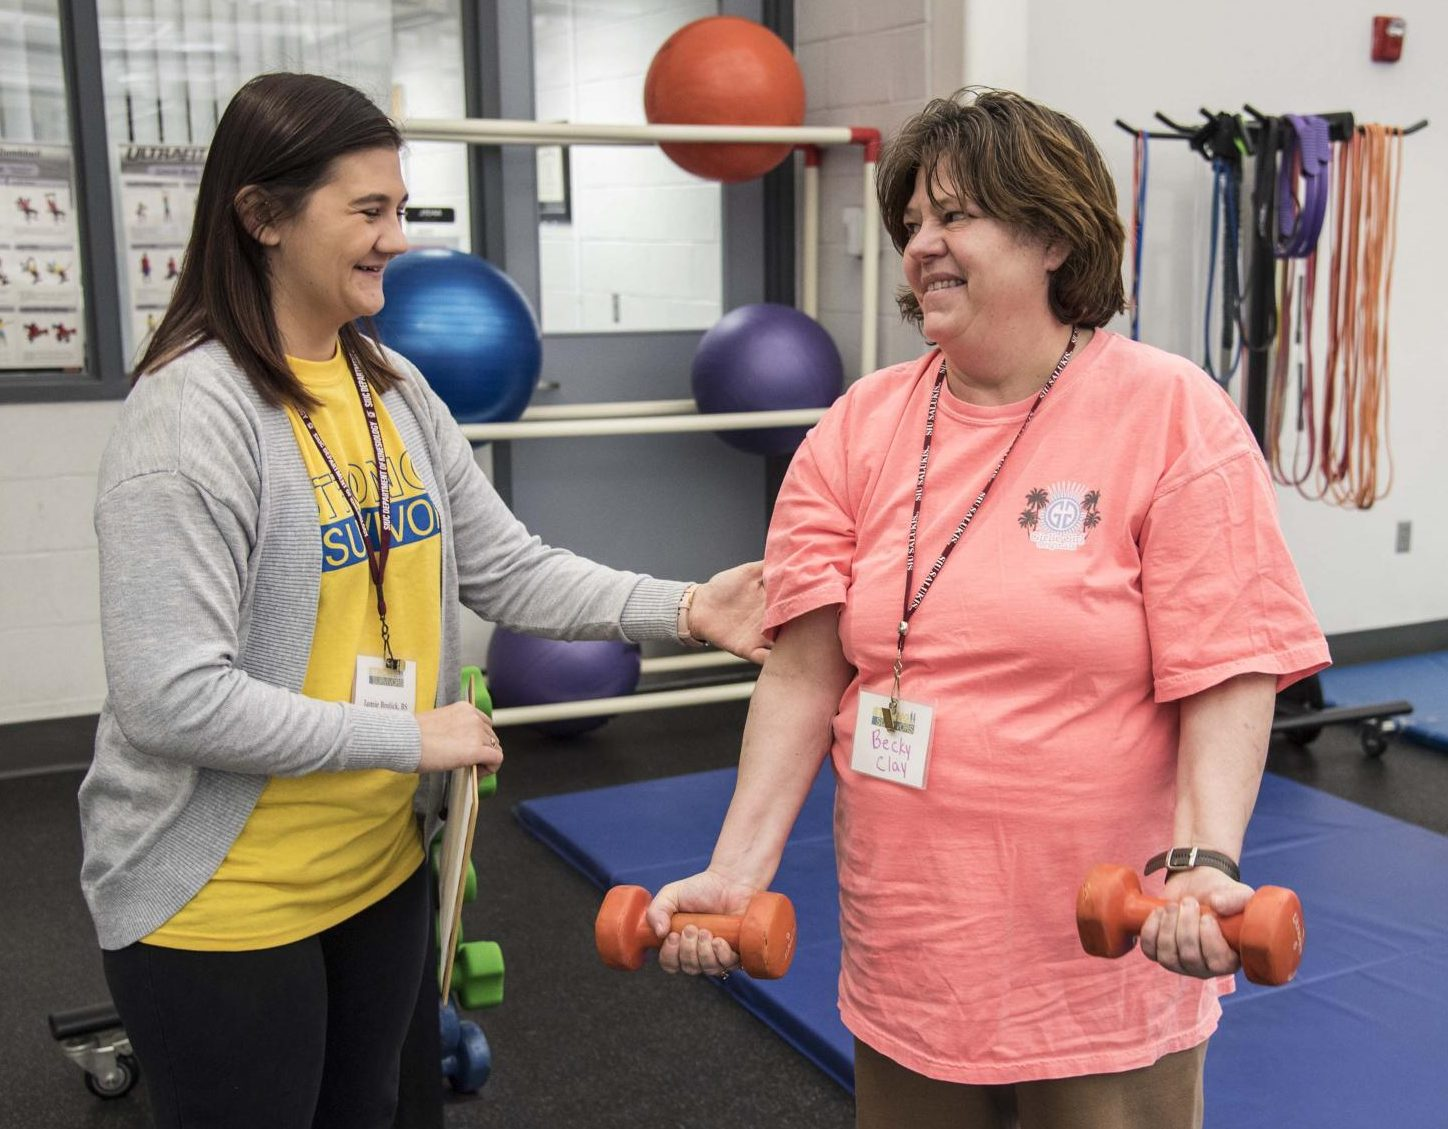 Jamie Brolick assists Strong Survivor participant, Becky Clay, as she lifts weights in the Aerobics and Weight Training Center on Tuesday, Feb. 19, 2019 at John A. Logan. Brolick actively volunteers in the program in order to help cancer survivors regain their strength.